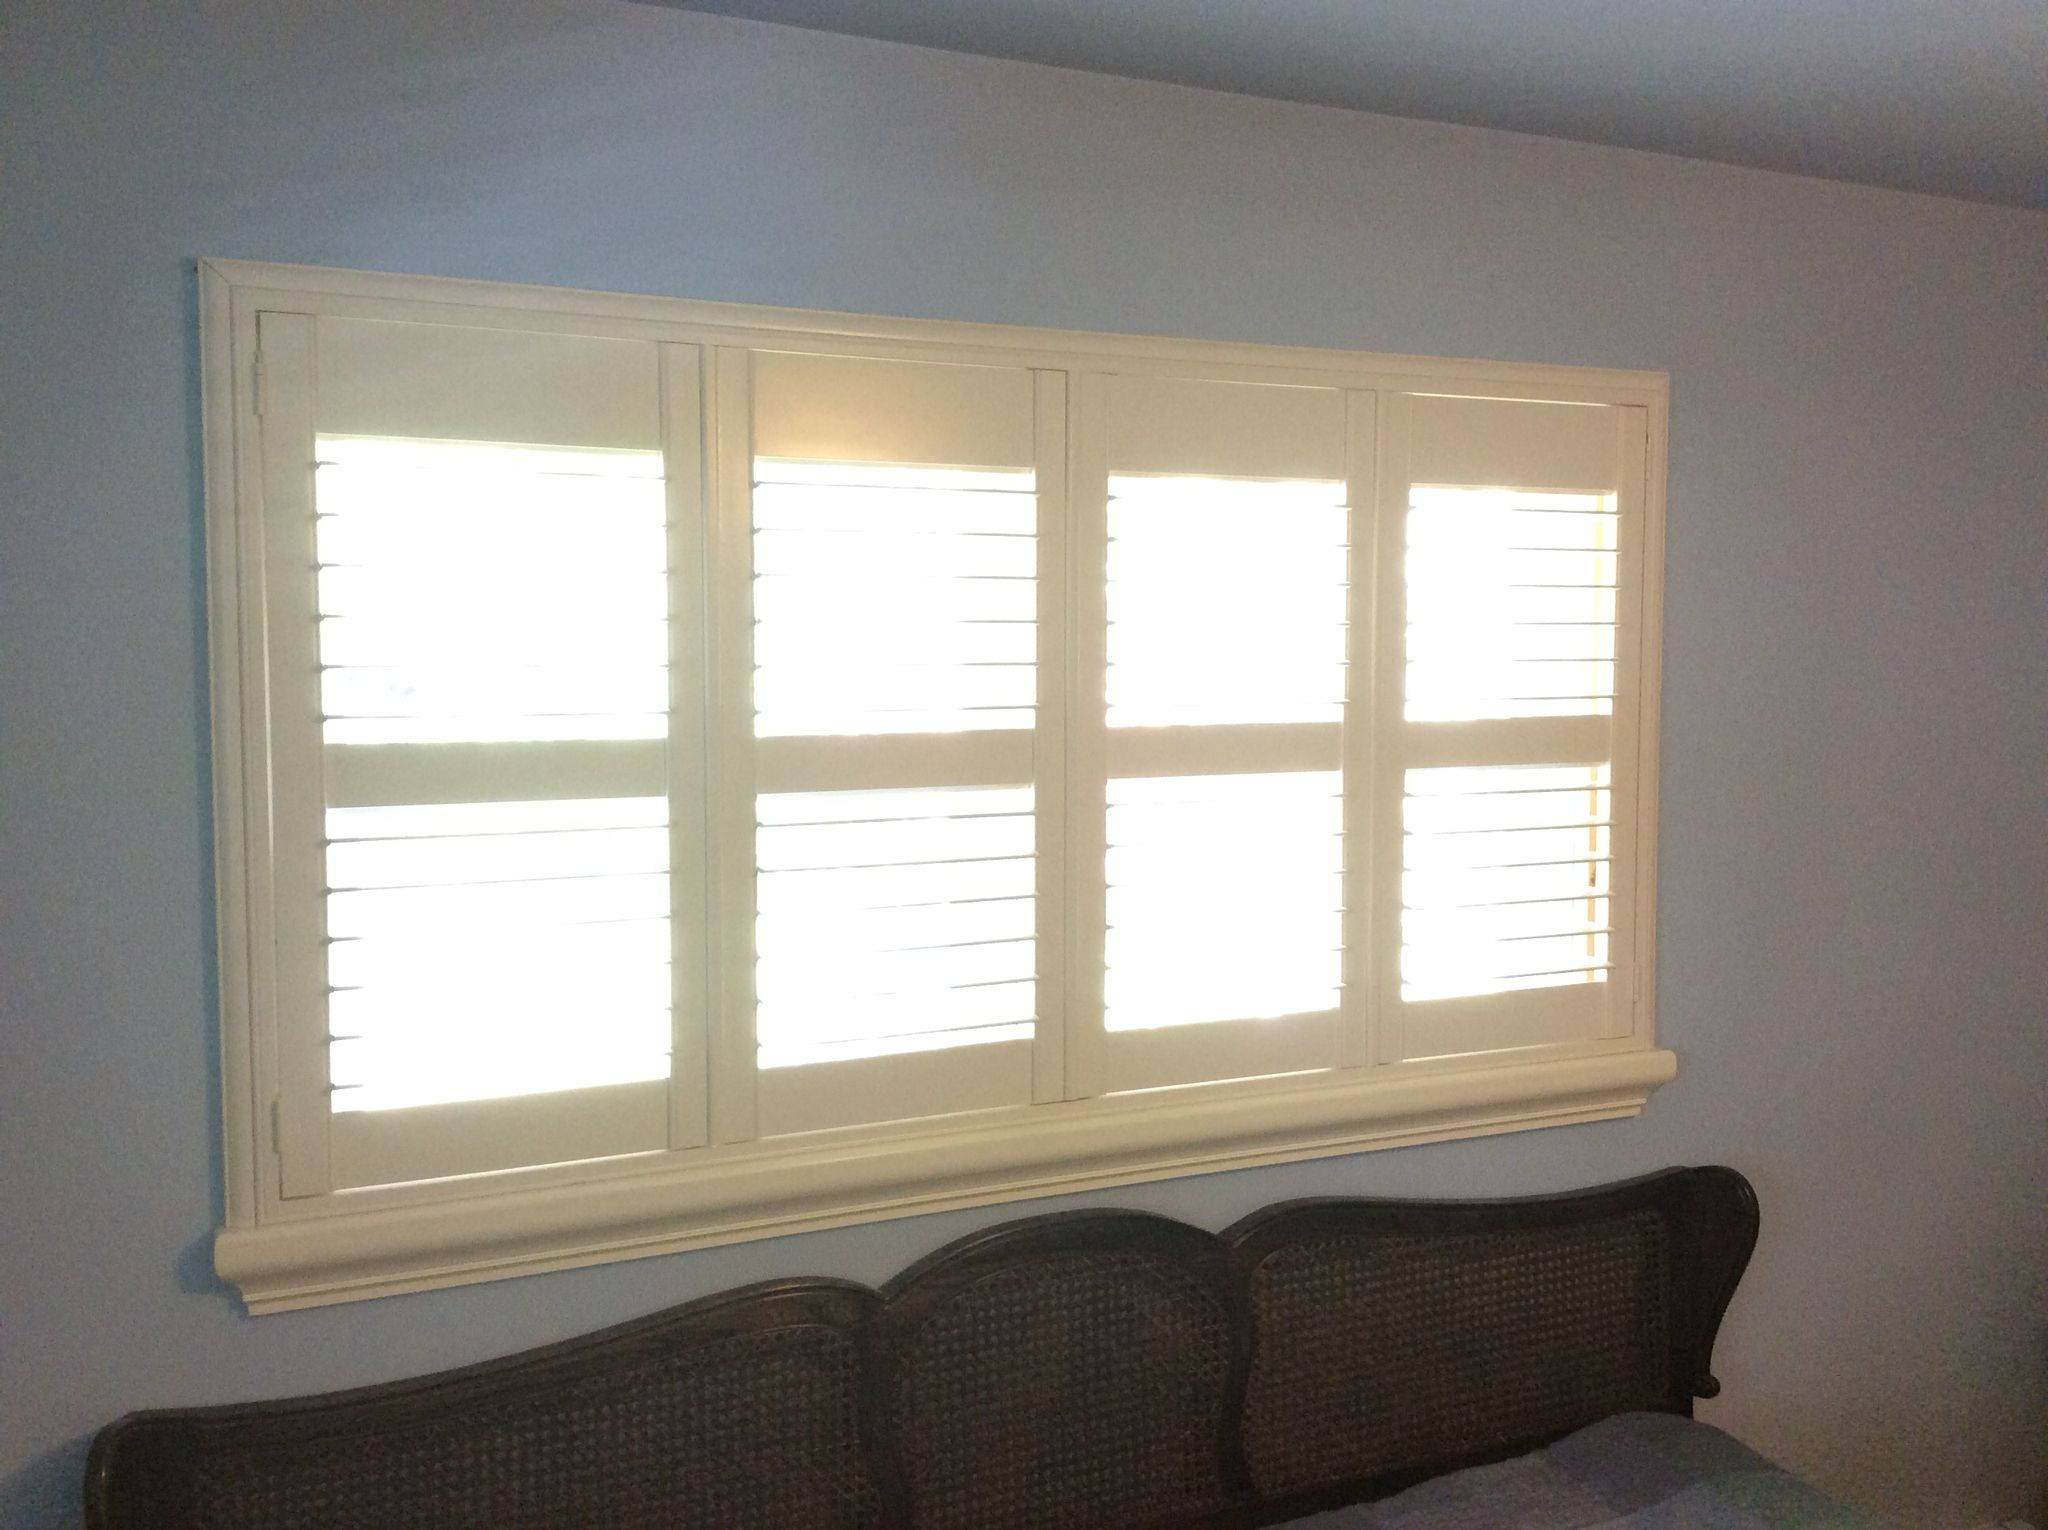 plantation budget cover bedroom shade panel polymer hunter baswood vanilla wide home blinds curtains for douglas window pvc portland sacramento shutters advanced with affordable